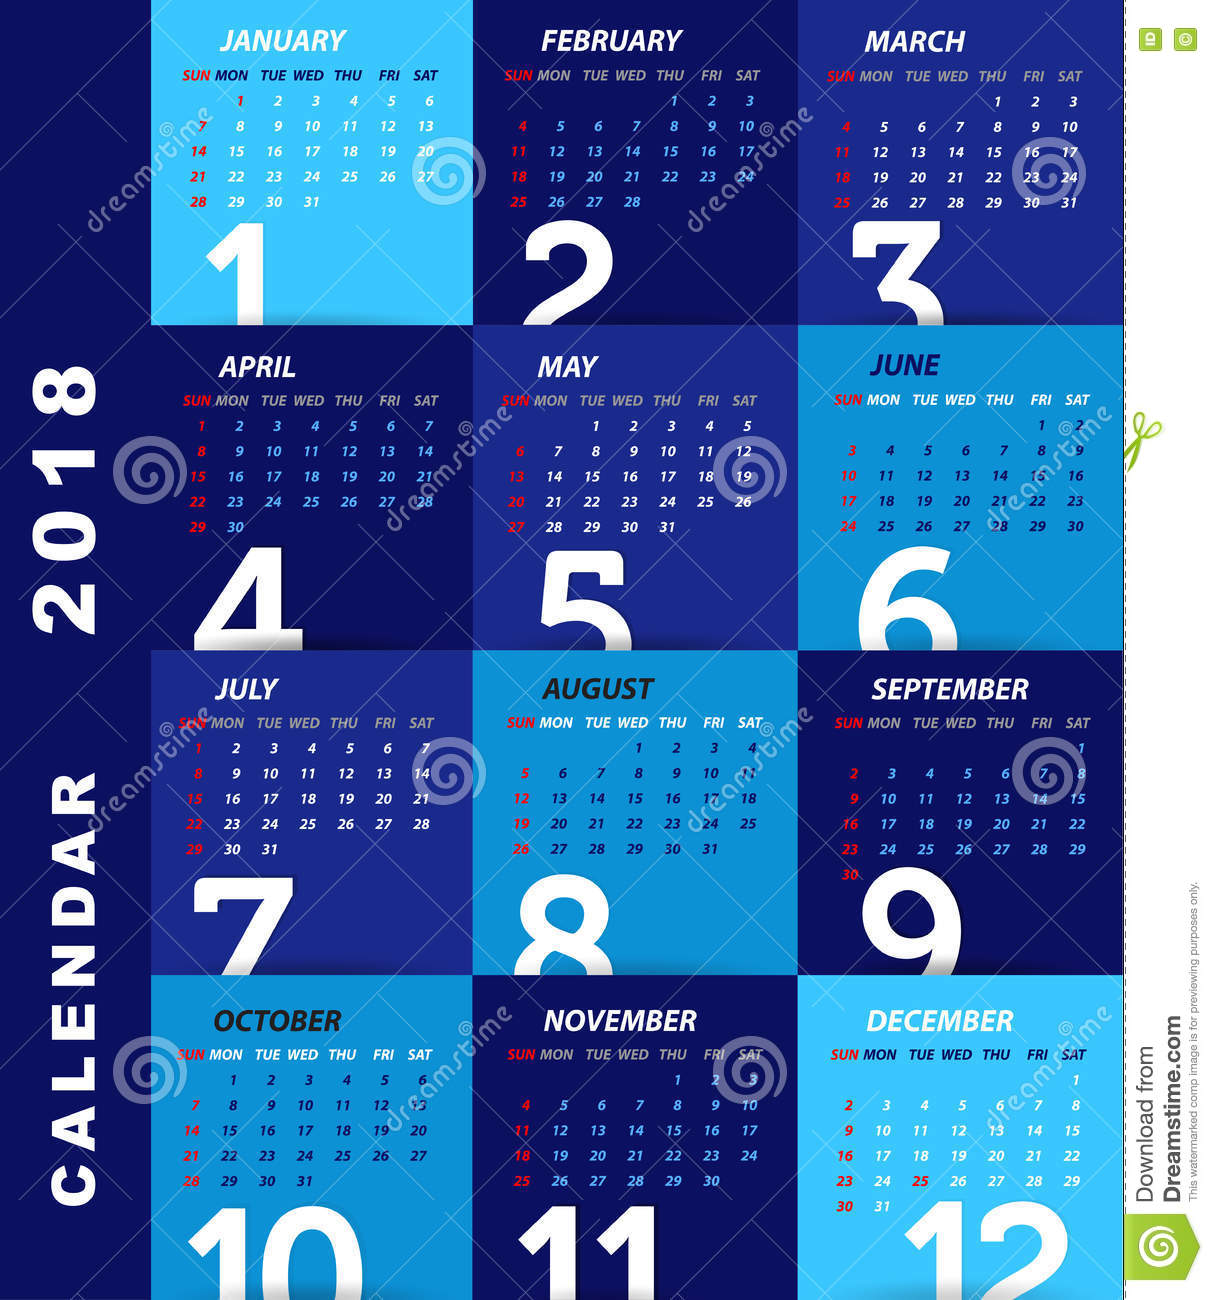 2018 Calendar Templatemodern Design Vector Image 81401835 – Calendar Sample Design